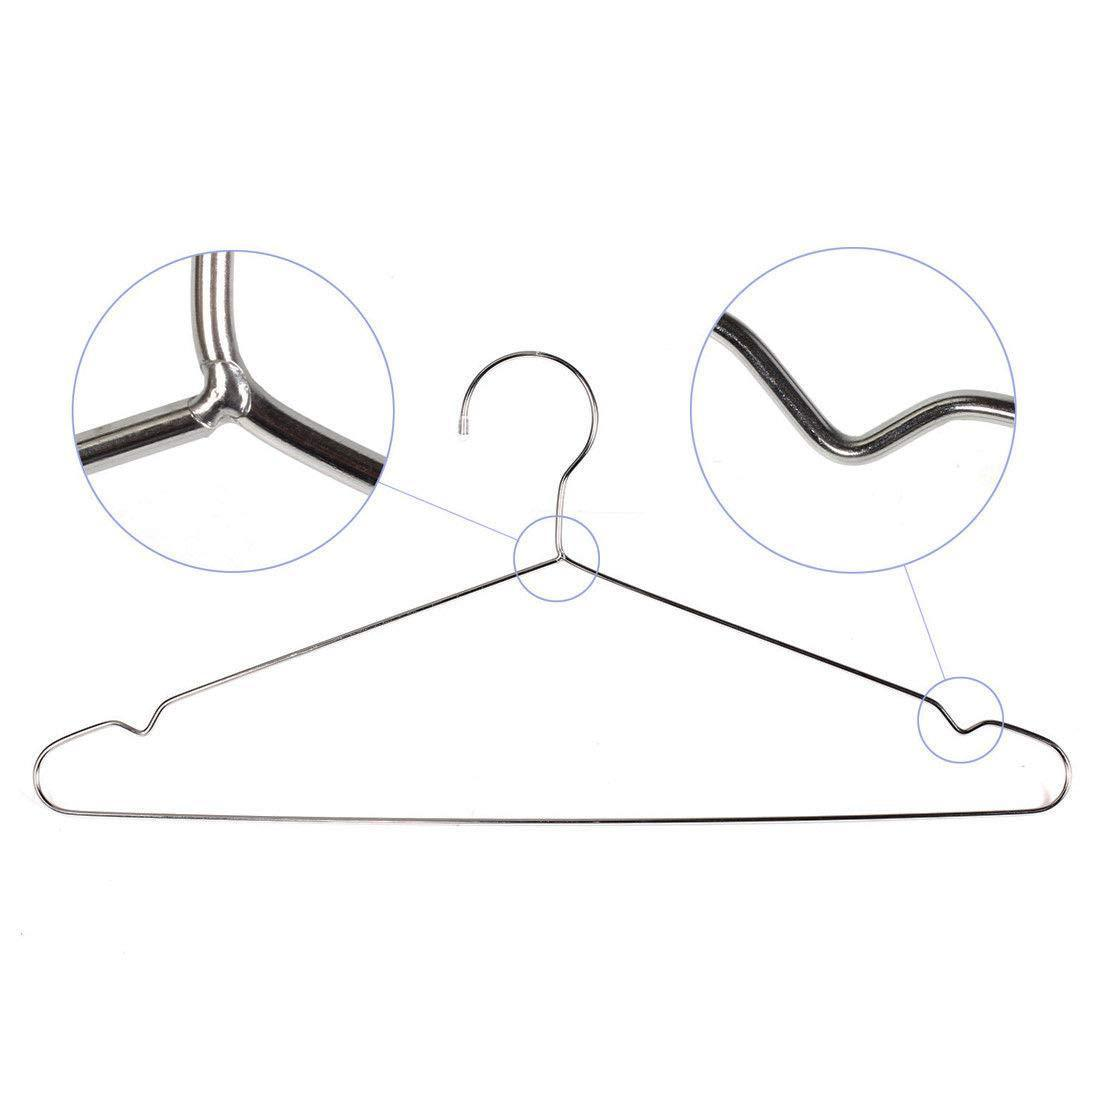 Get amazcafe 10 pcs 16 5 heavy duty stainless steel clothing clothes coat suit hangers